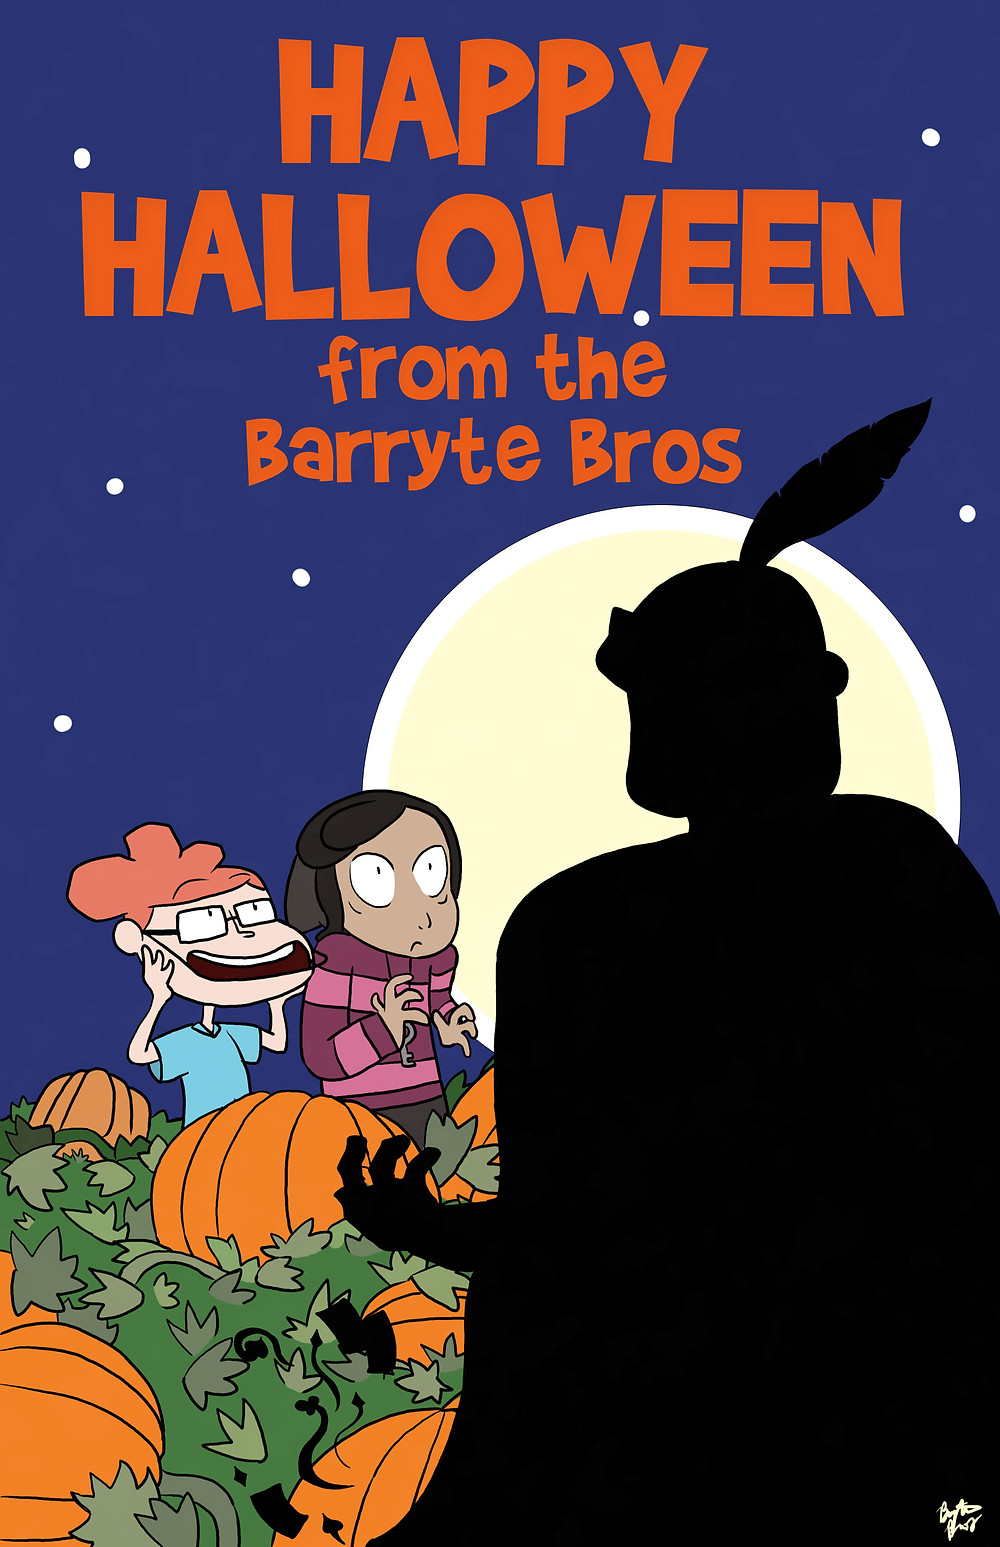 Happy Halloween from the Barryte Bros